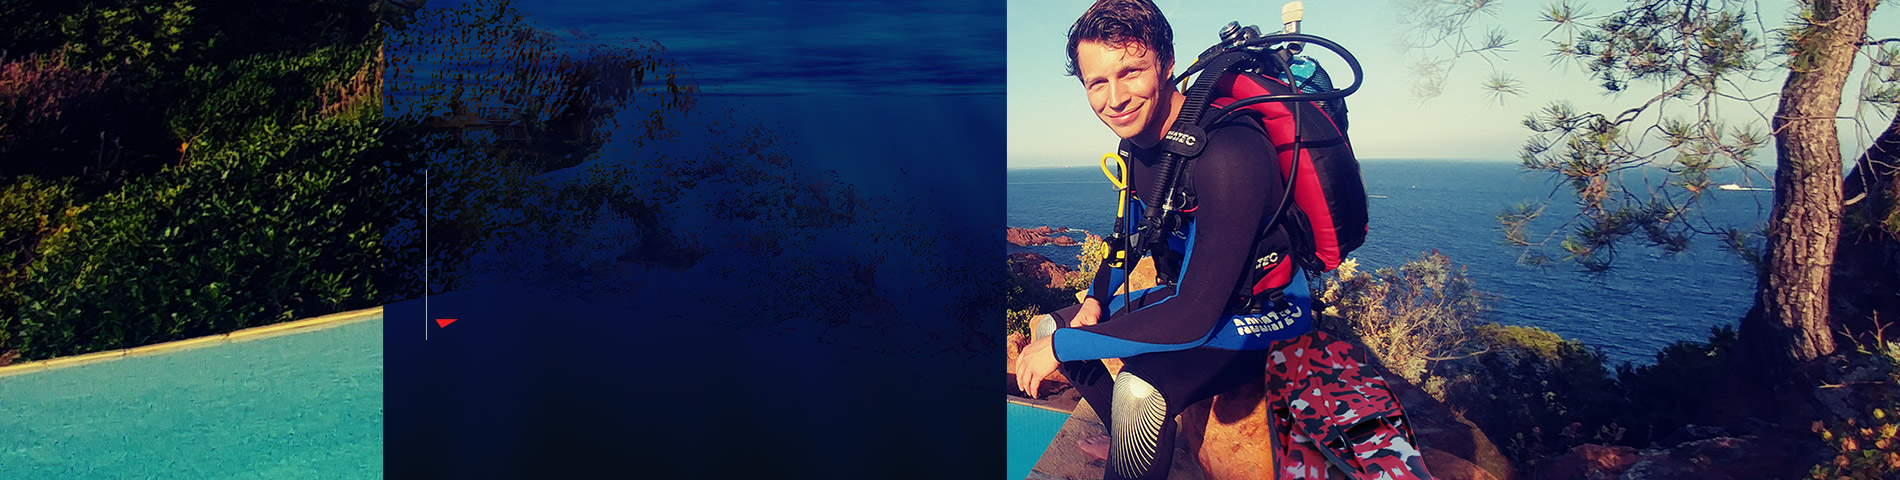 AQUATEC Scuba diving equipment Only the best for your passion